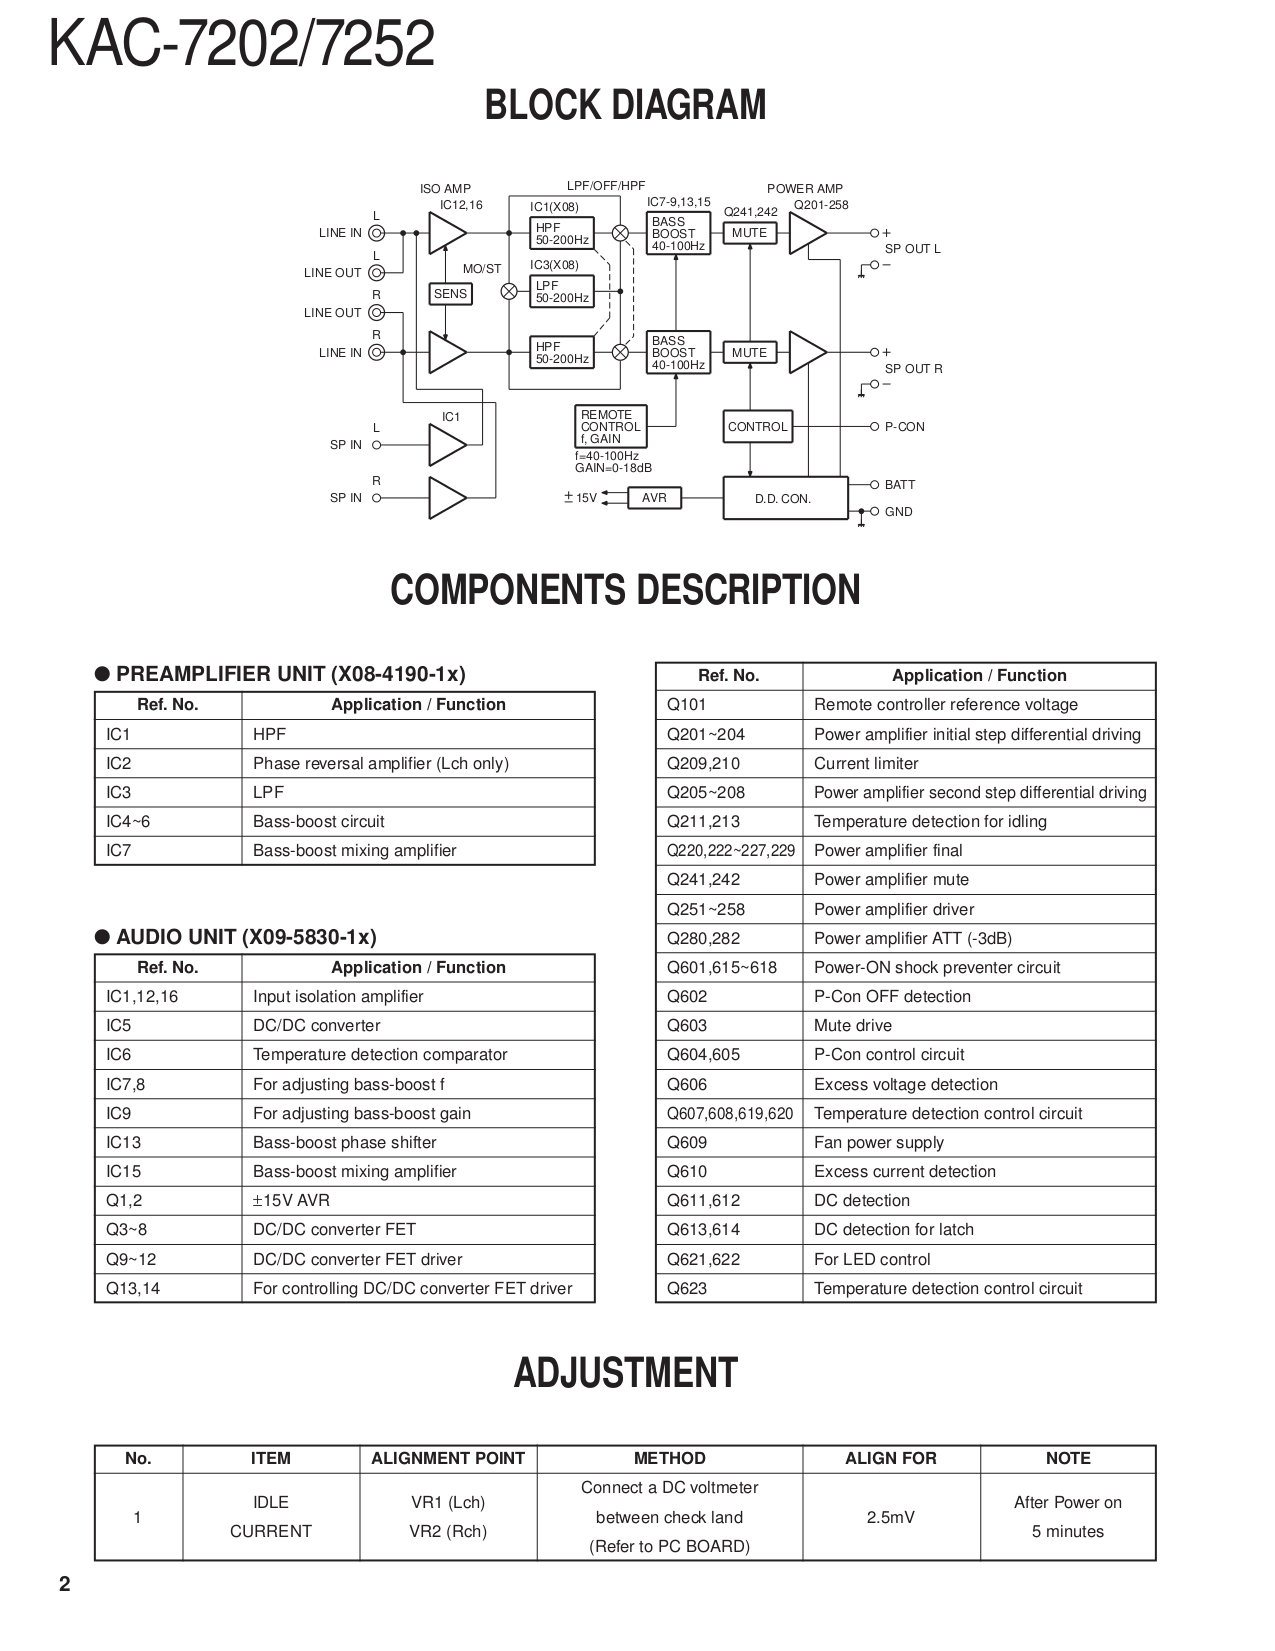 Kenwood Kac 7205 Wiring Diagram